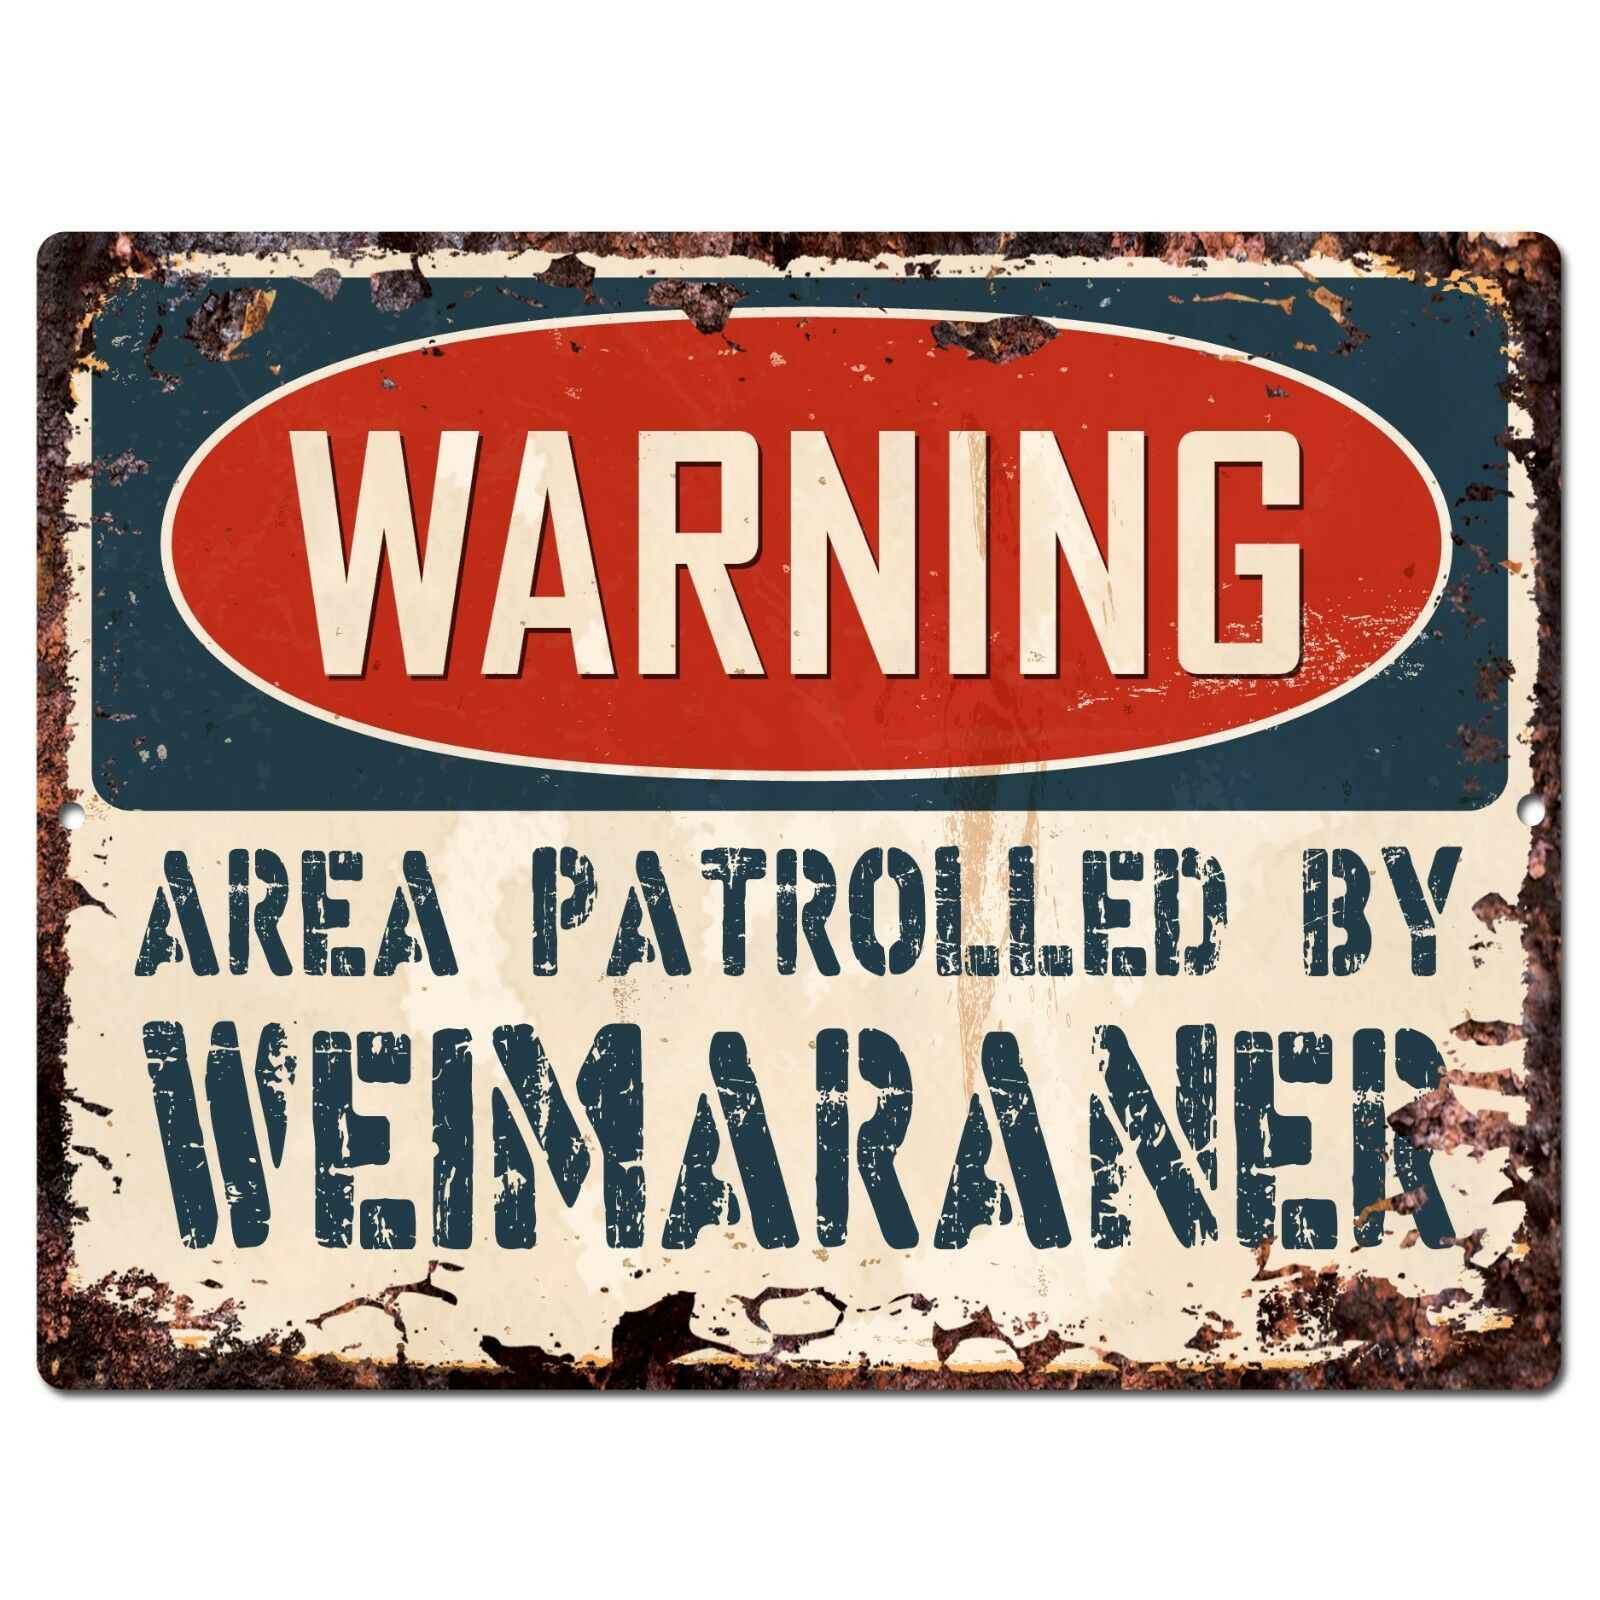 PP2471 WARNING AREA PATROLLED BY WEIMARANER Plate Chic Sign Home Decor